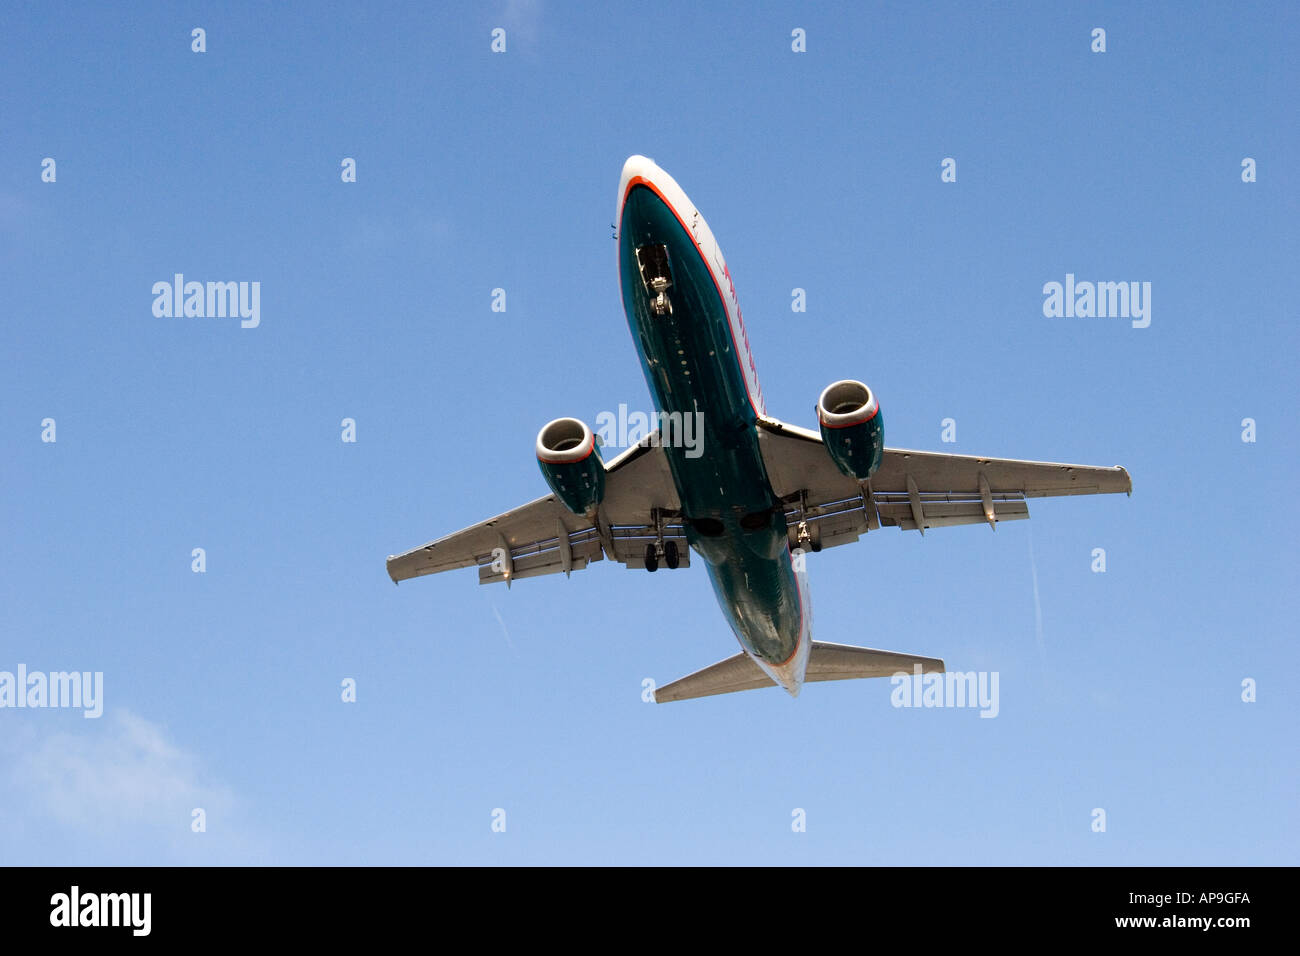 A commercial airliner flying overhead with blue sky above. - Stock Image